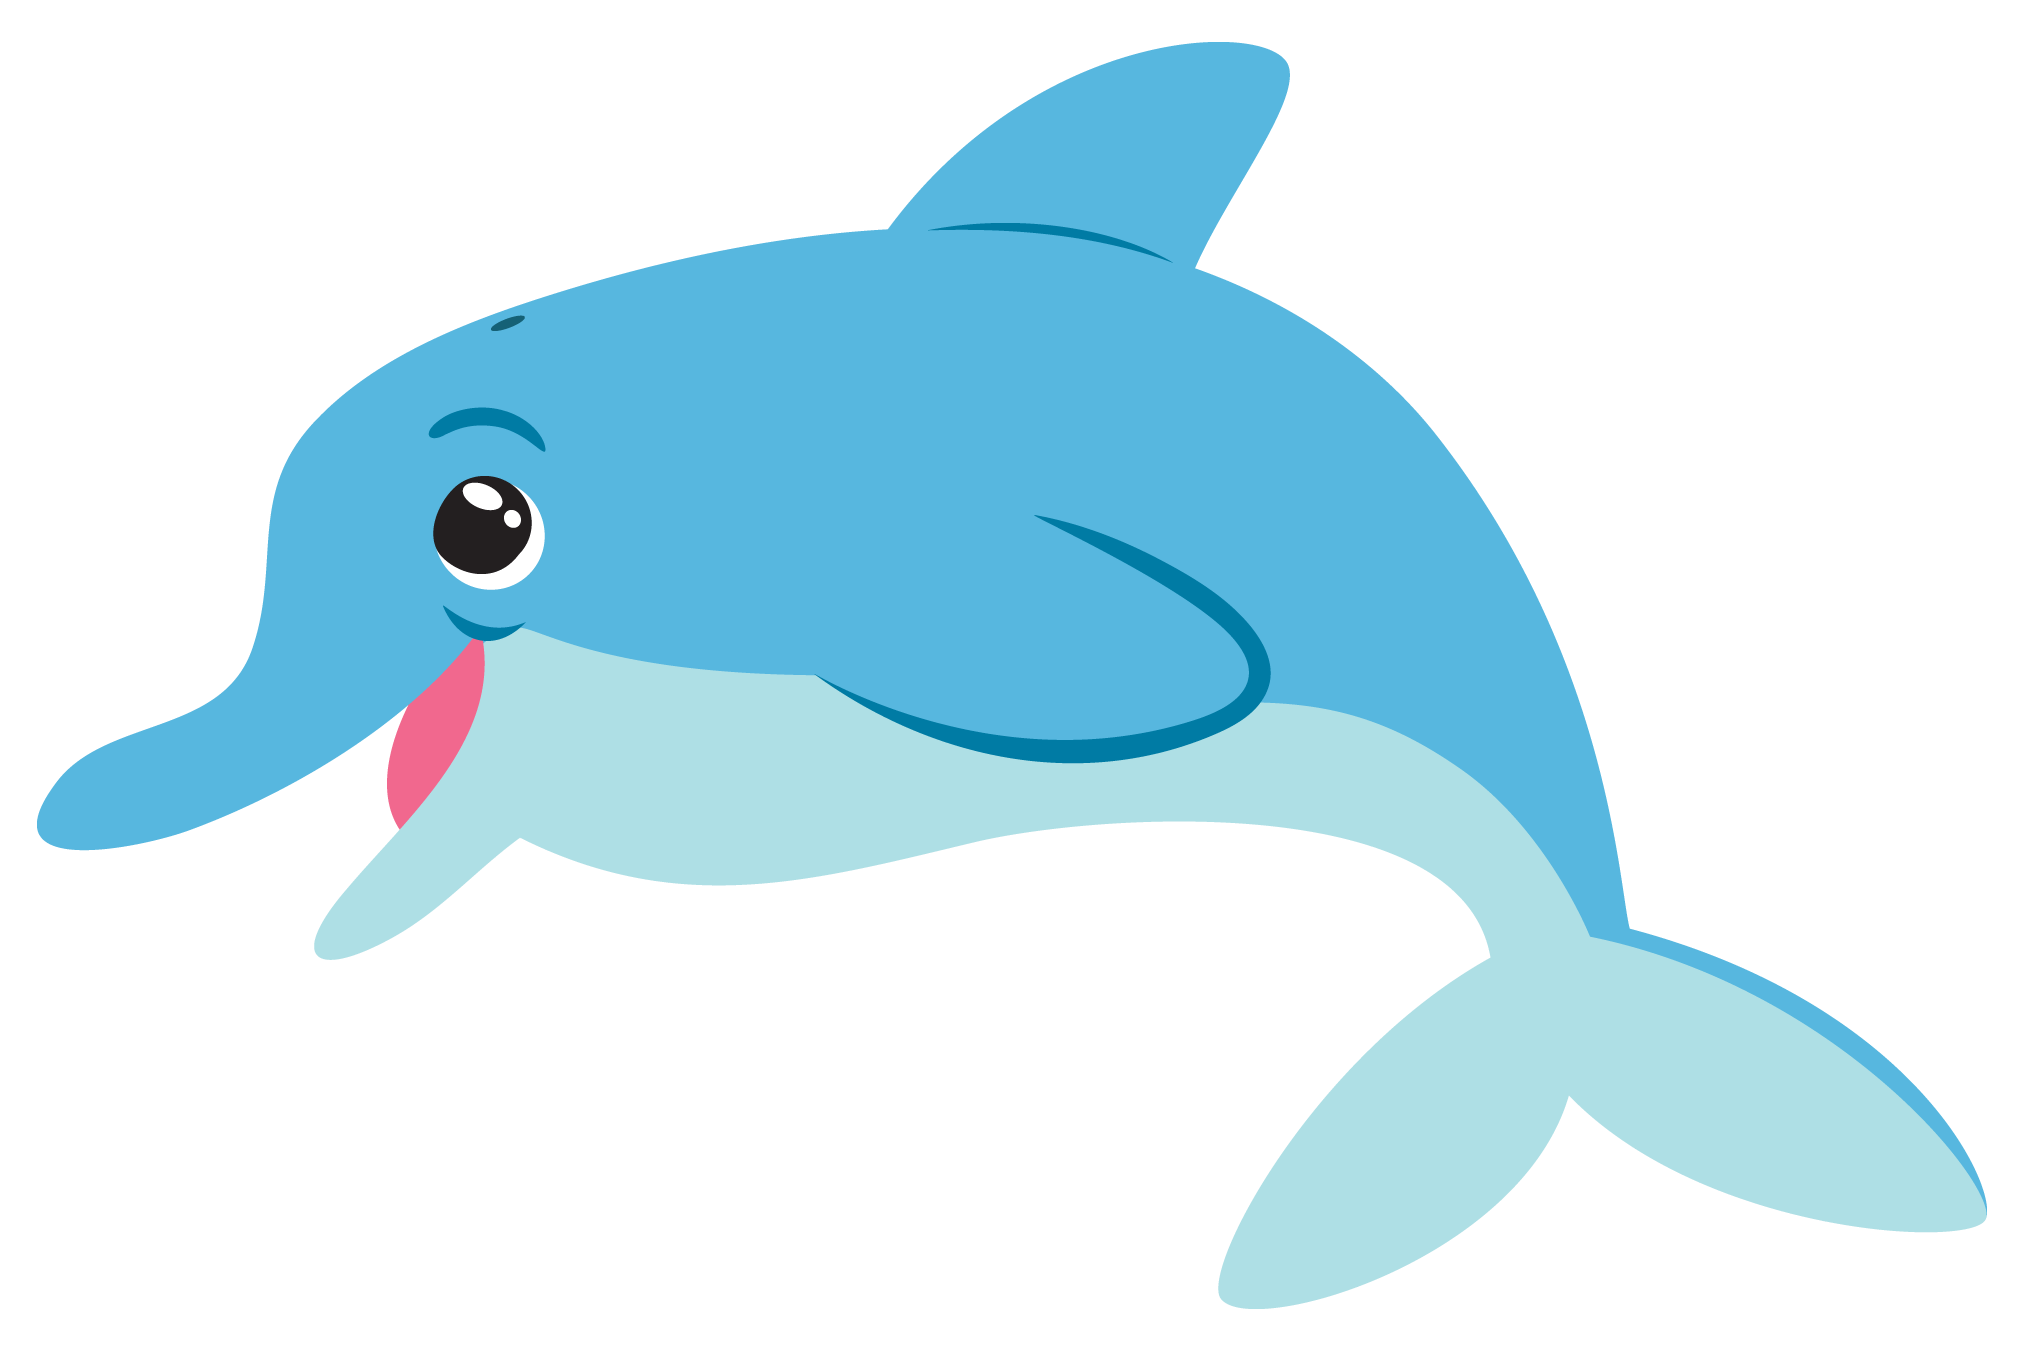 dolphin clipart for kids at getdrawings com free for personal use rh getdrawings com dolphin clipart free dolphin clipart black and white